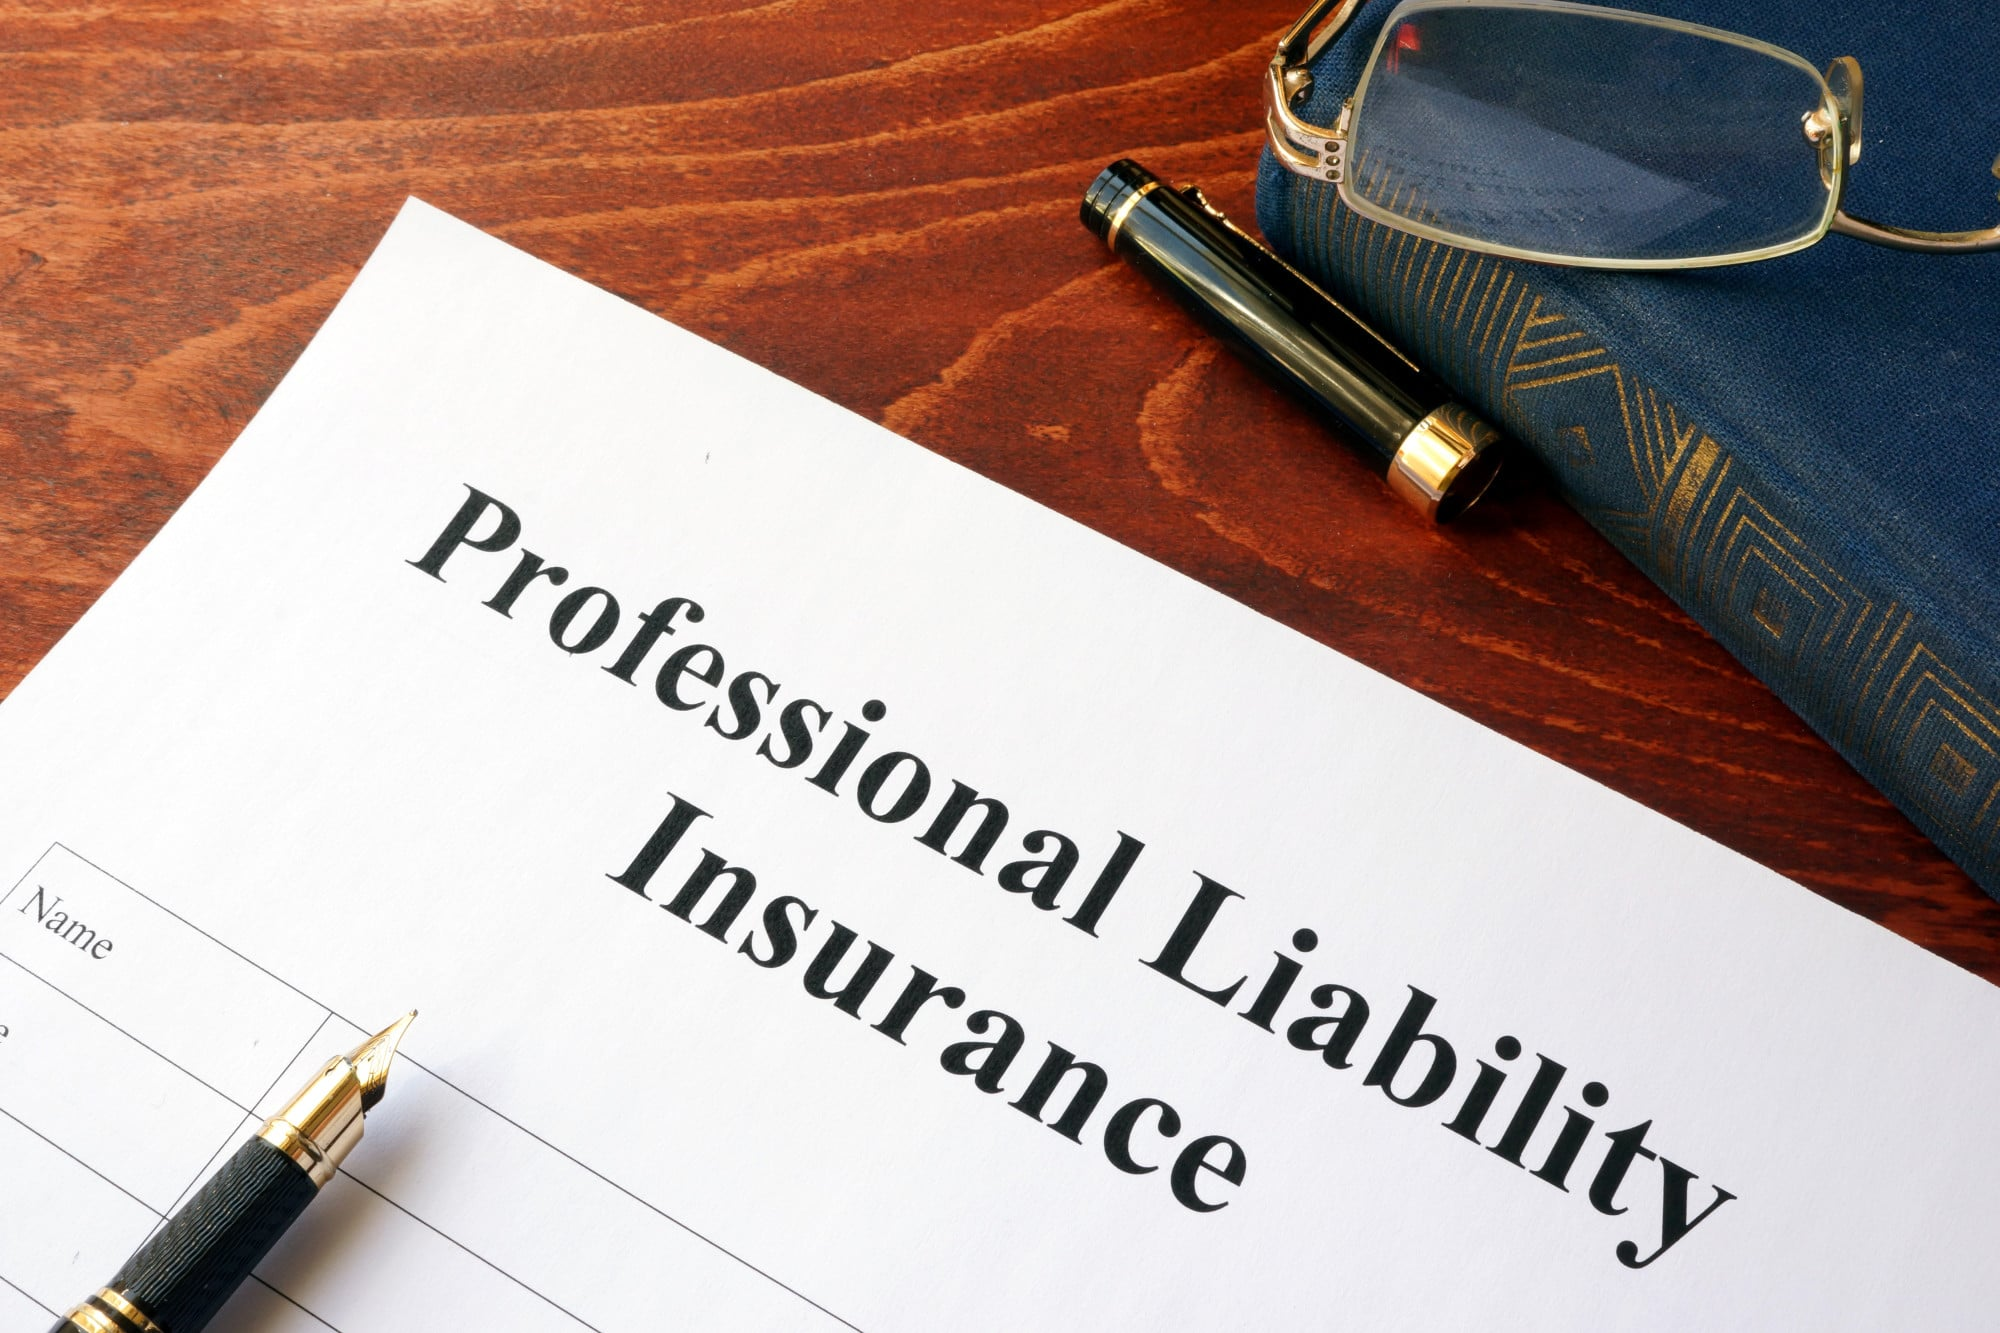 Professional Liability vs General Liability Insurance: What's the Difference?